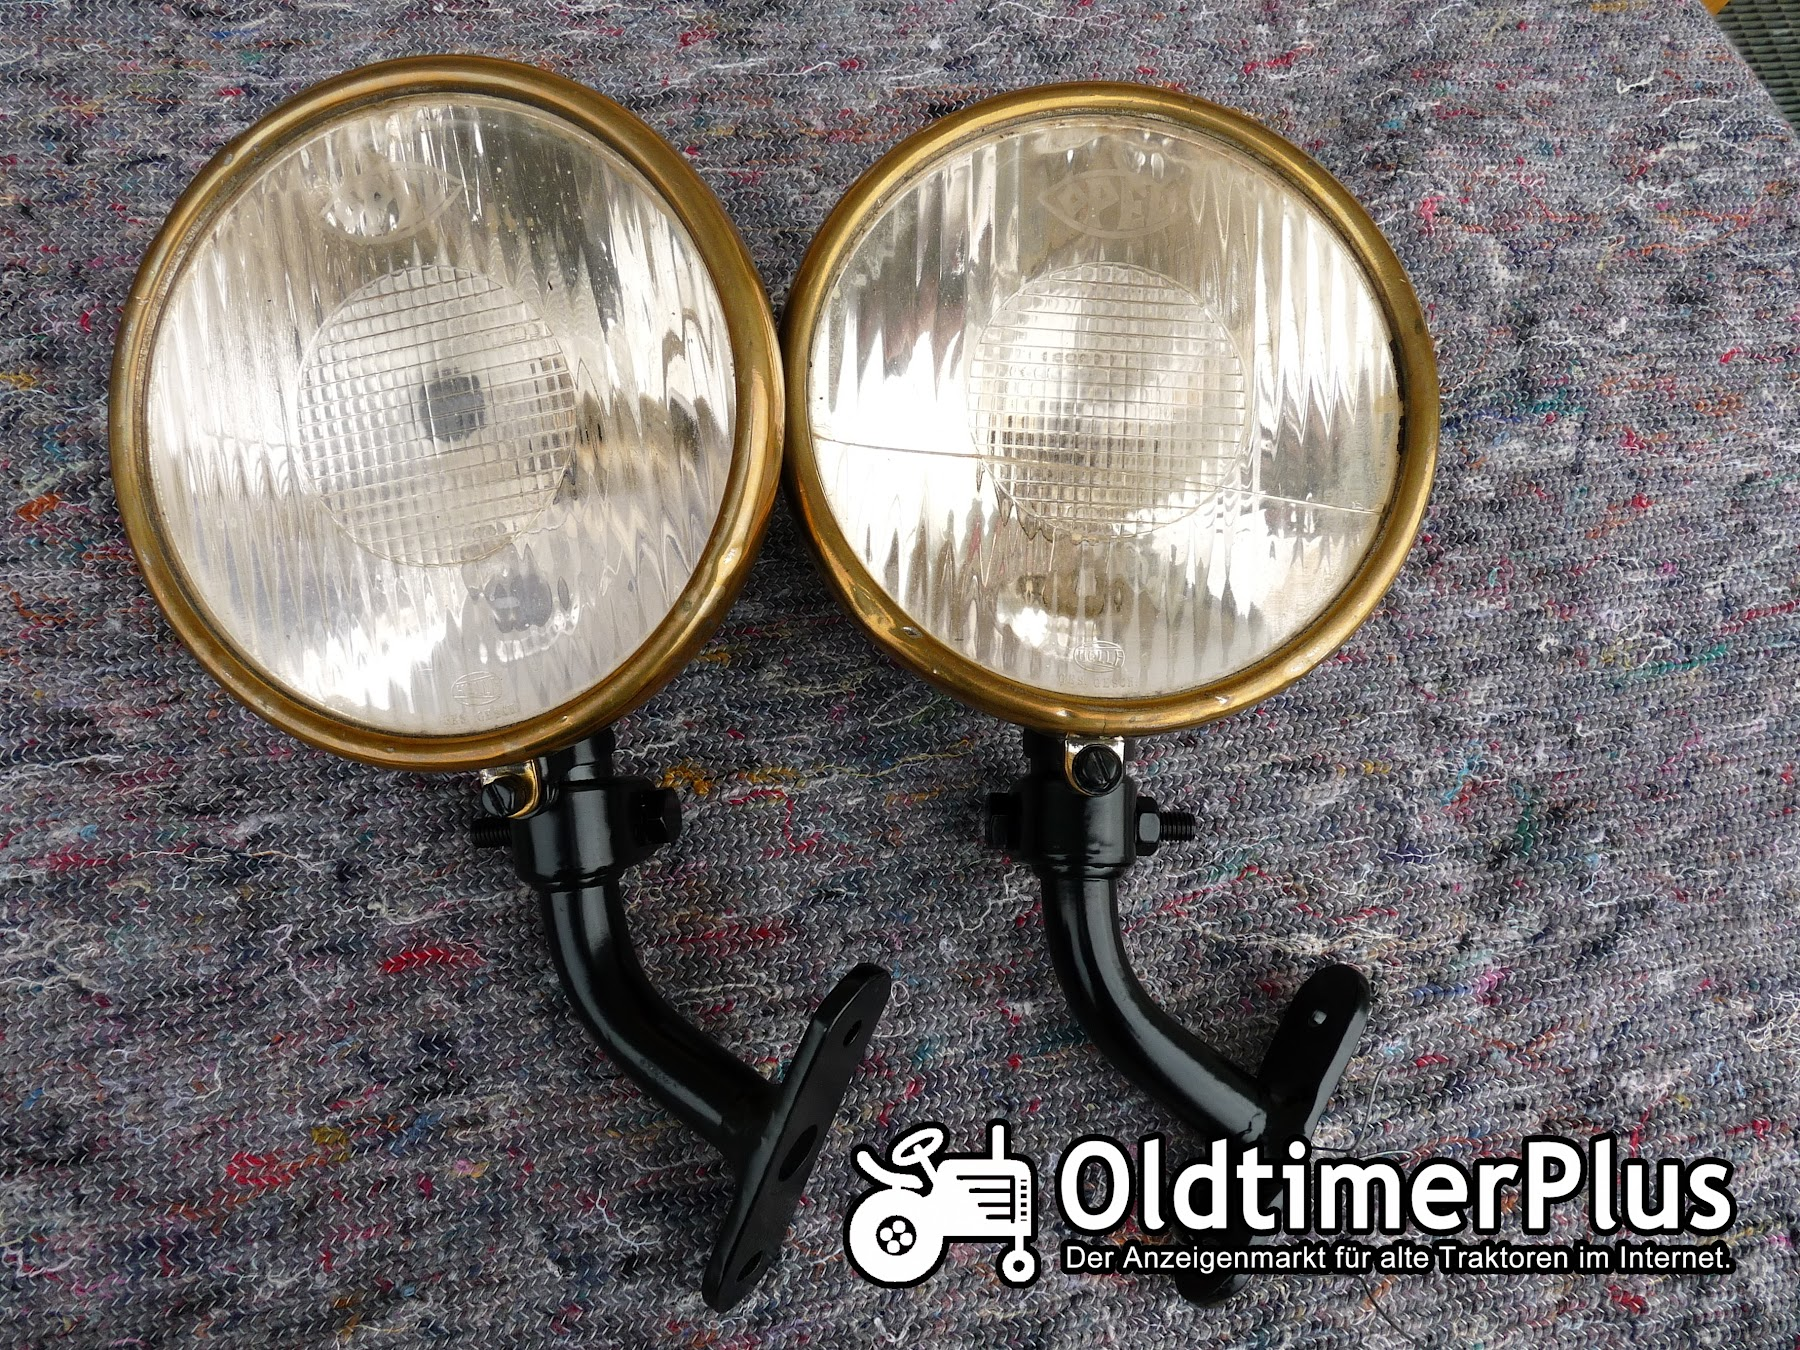 opel 2 st ck opel scheinwerfer lampen glas ca 17 cm oldtimer in deutschland zu verkaufen. Black Bedroom Furniture Sets. Home Design Ideas